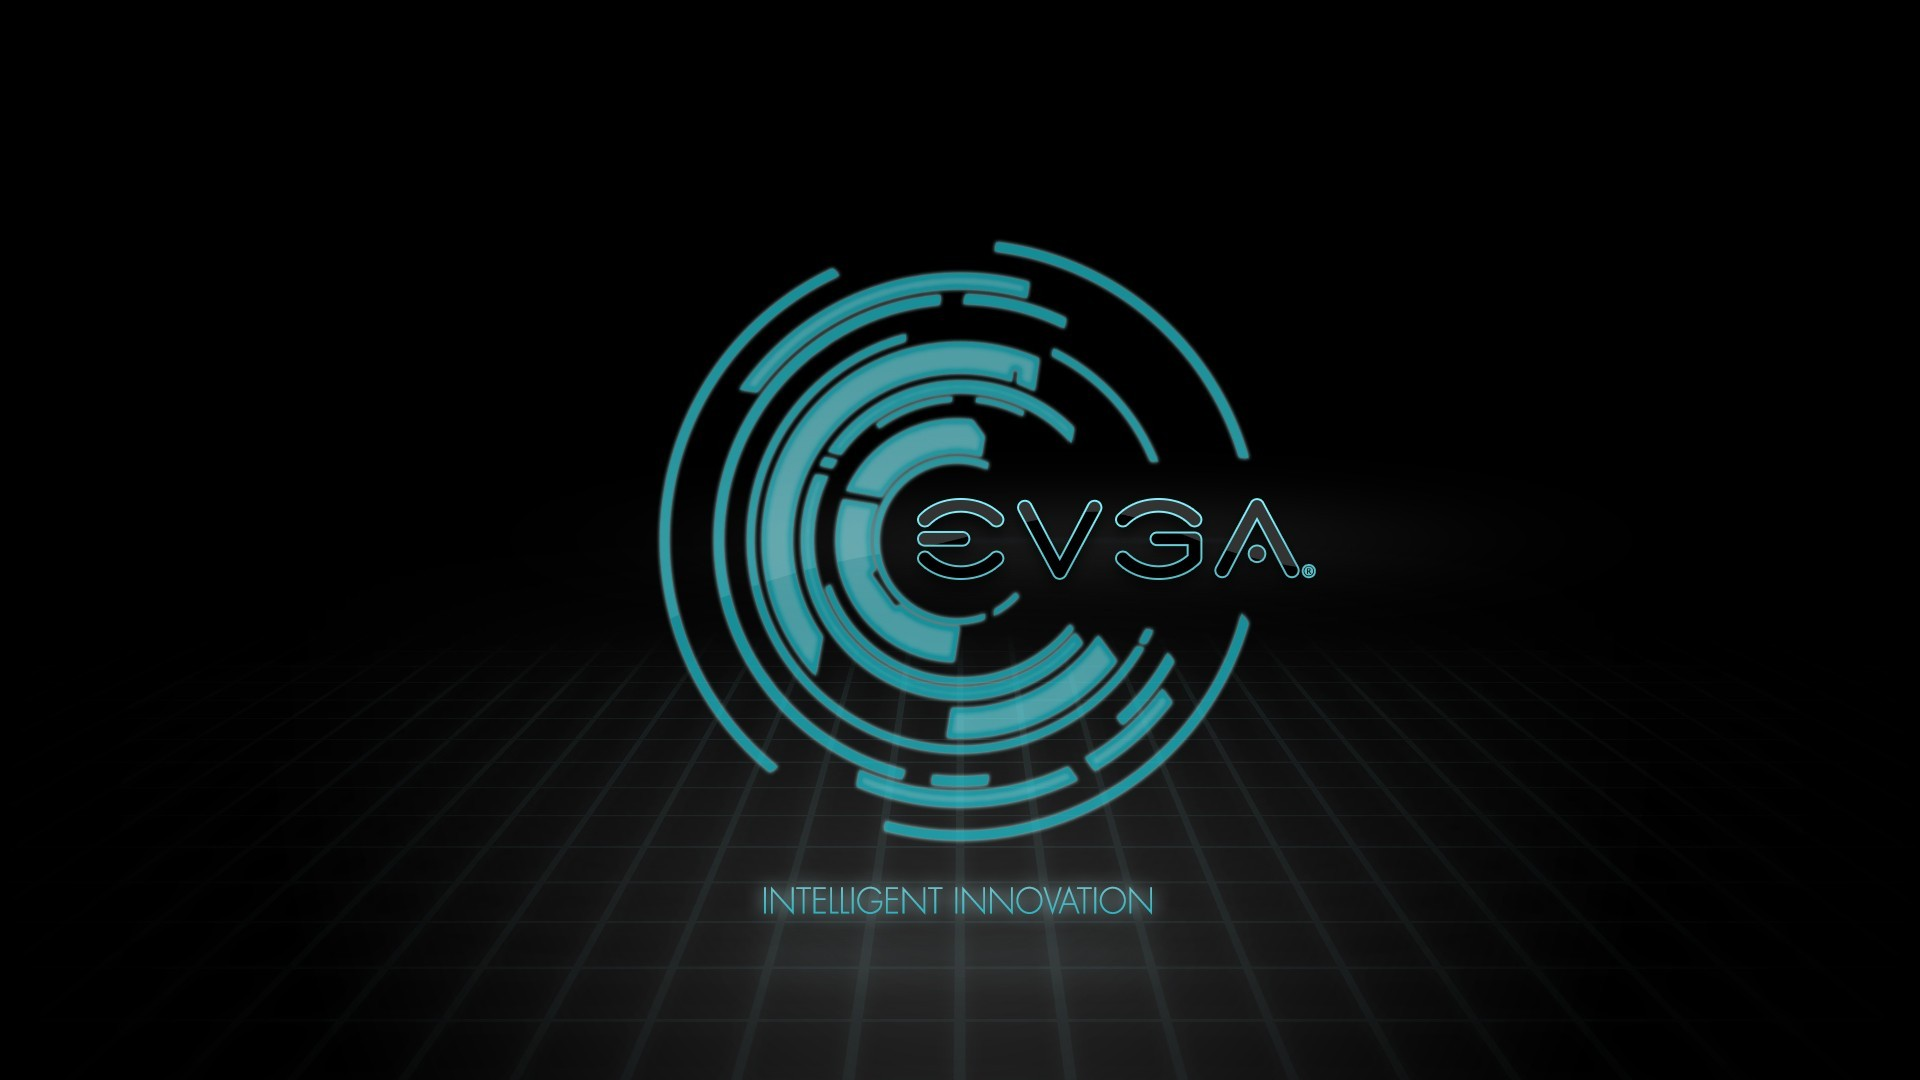 Evga Wallpapers Images - Wickedsa com